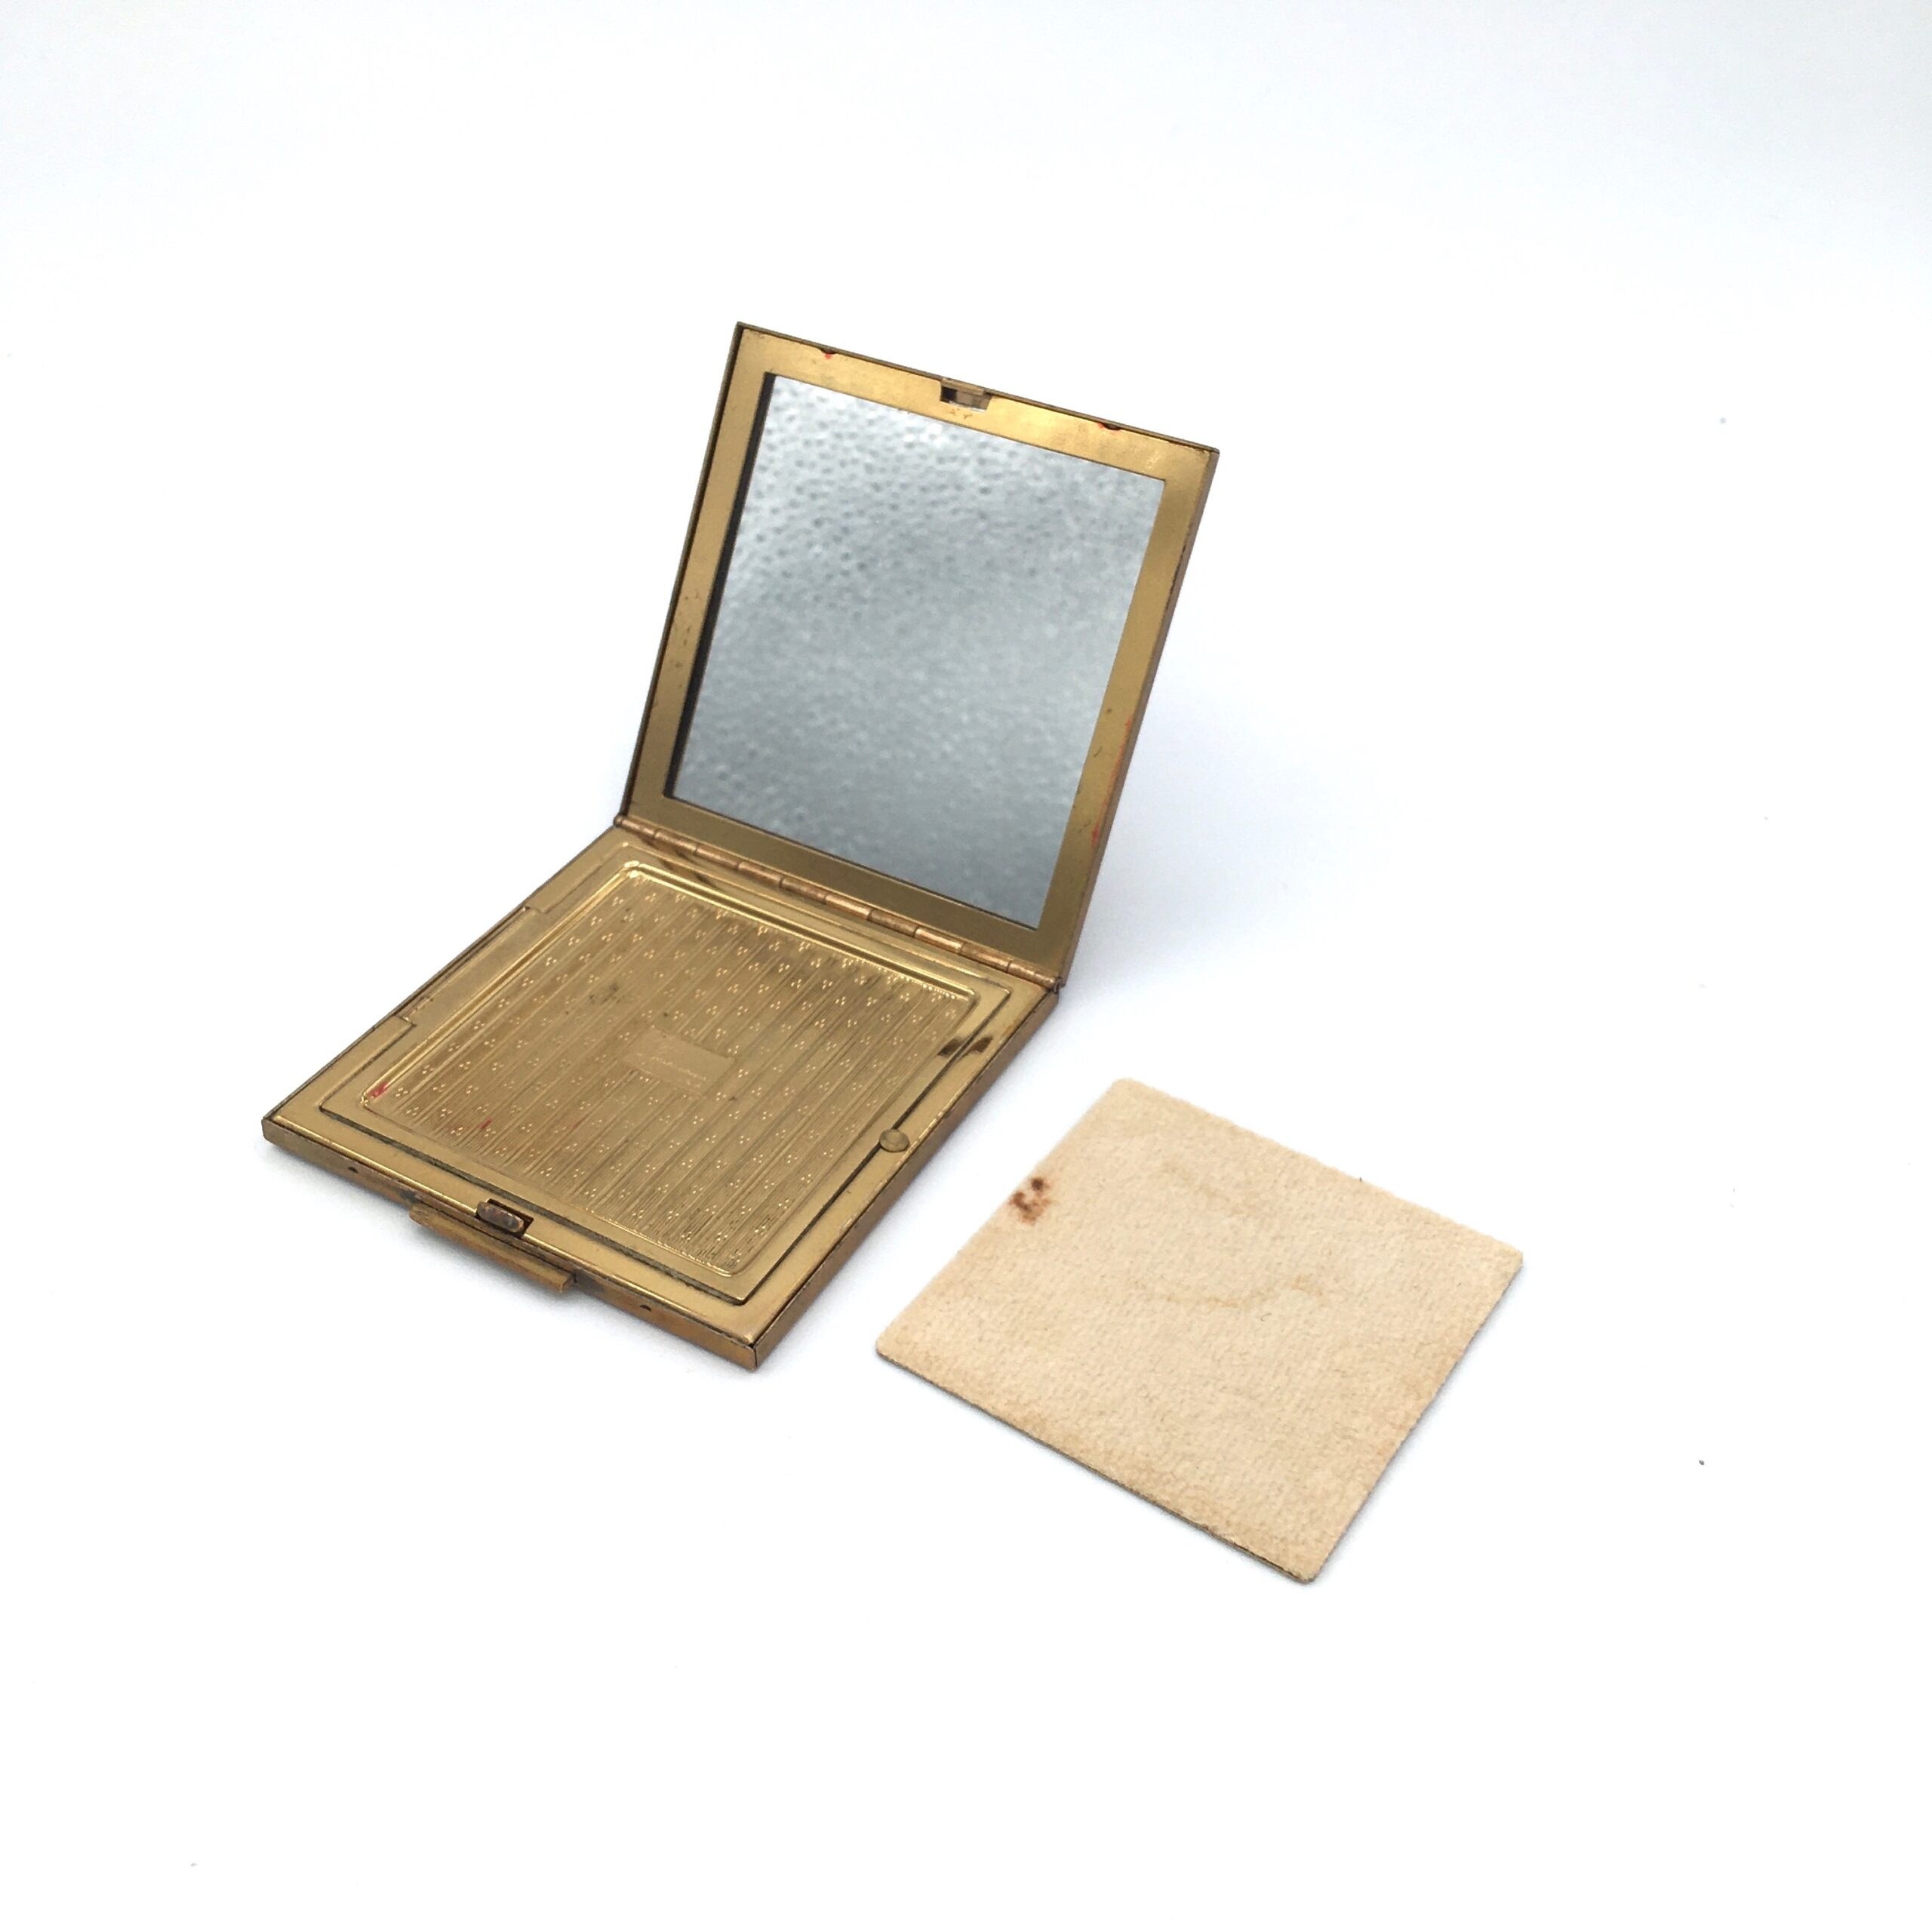 Square Mother of Pearl Compact